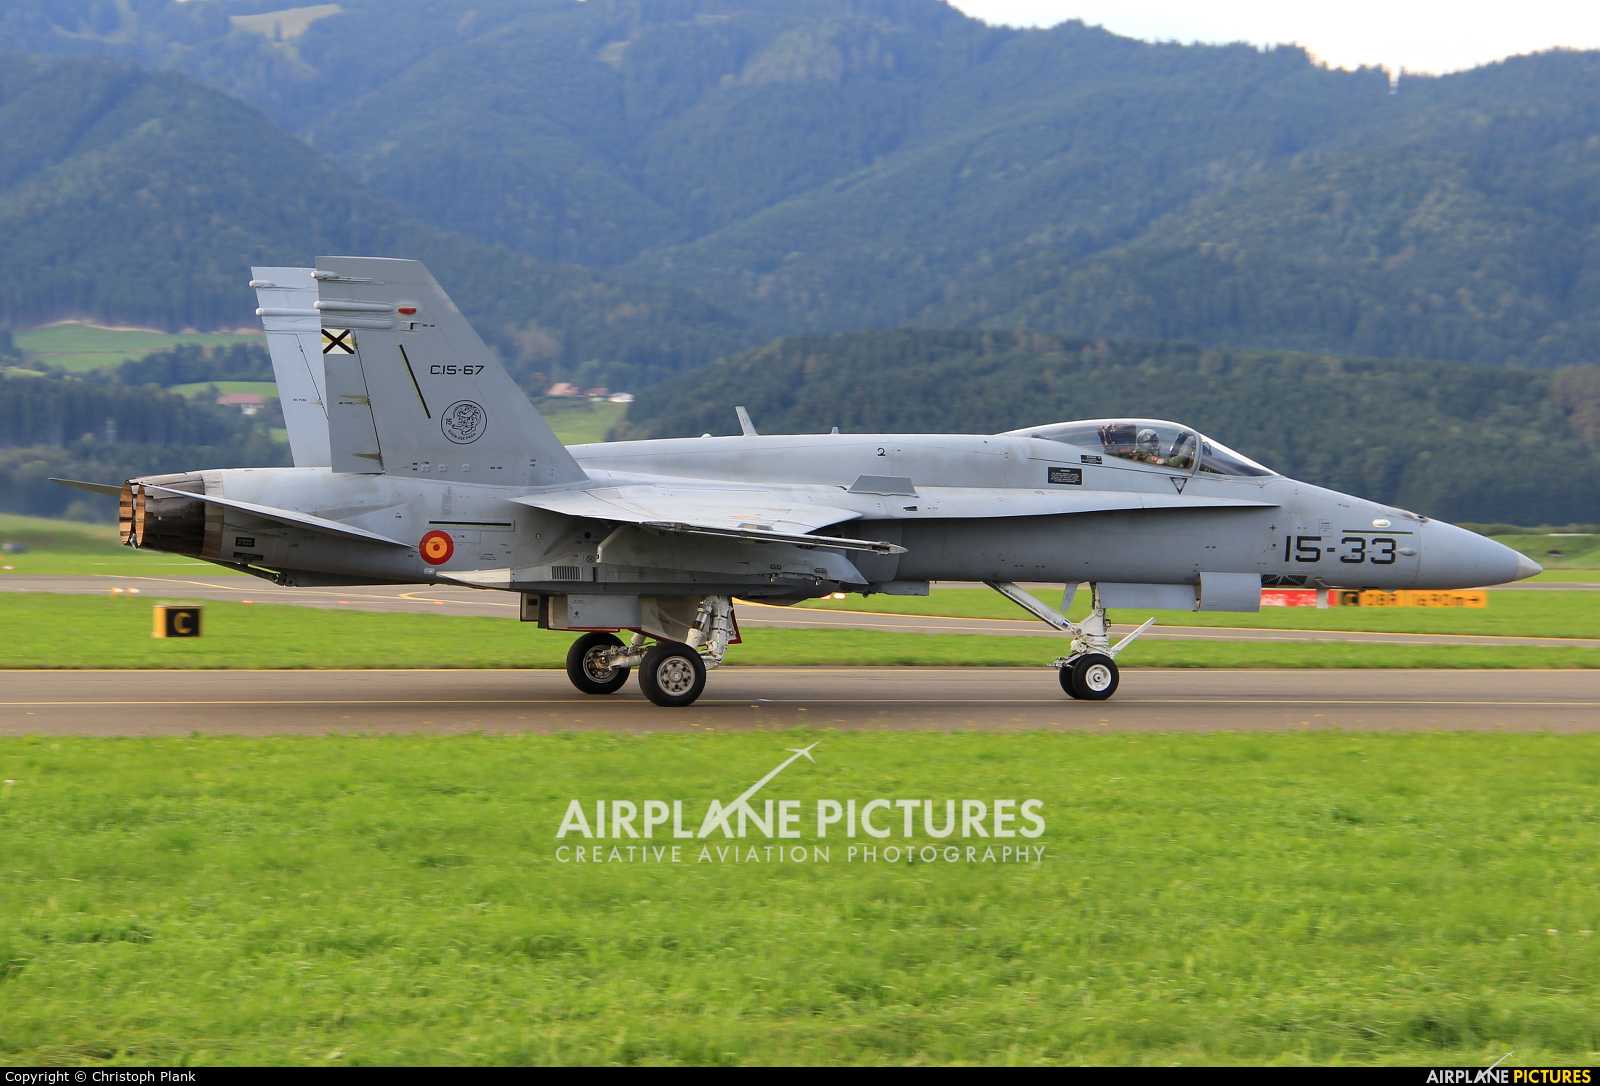 Spain - Air Force 15-33 aircraft at Zeltweg